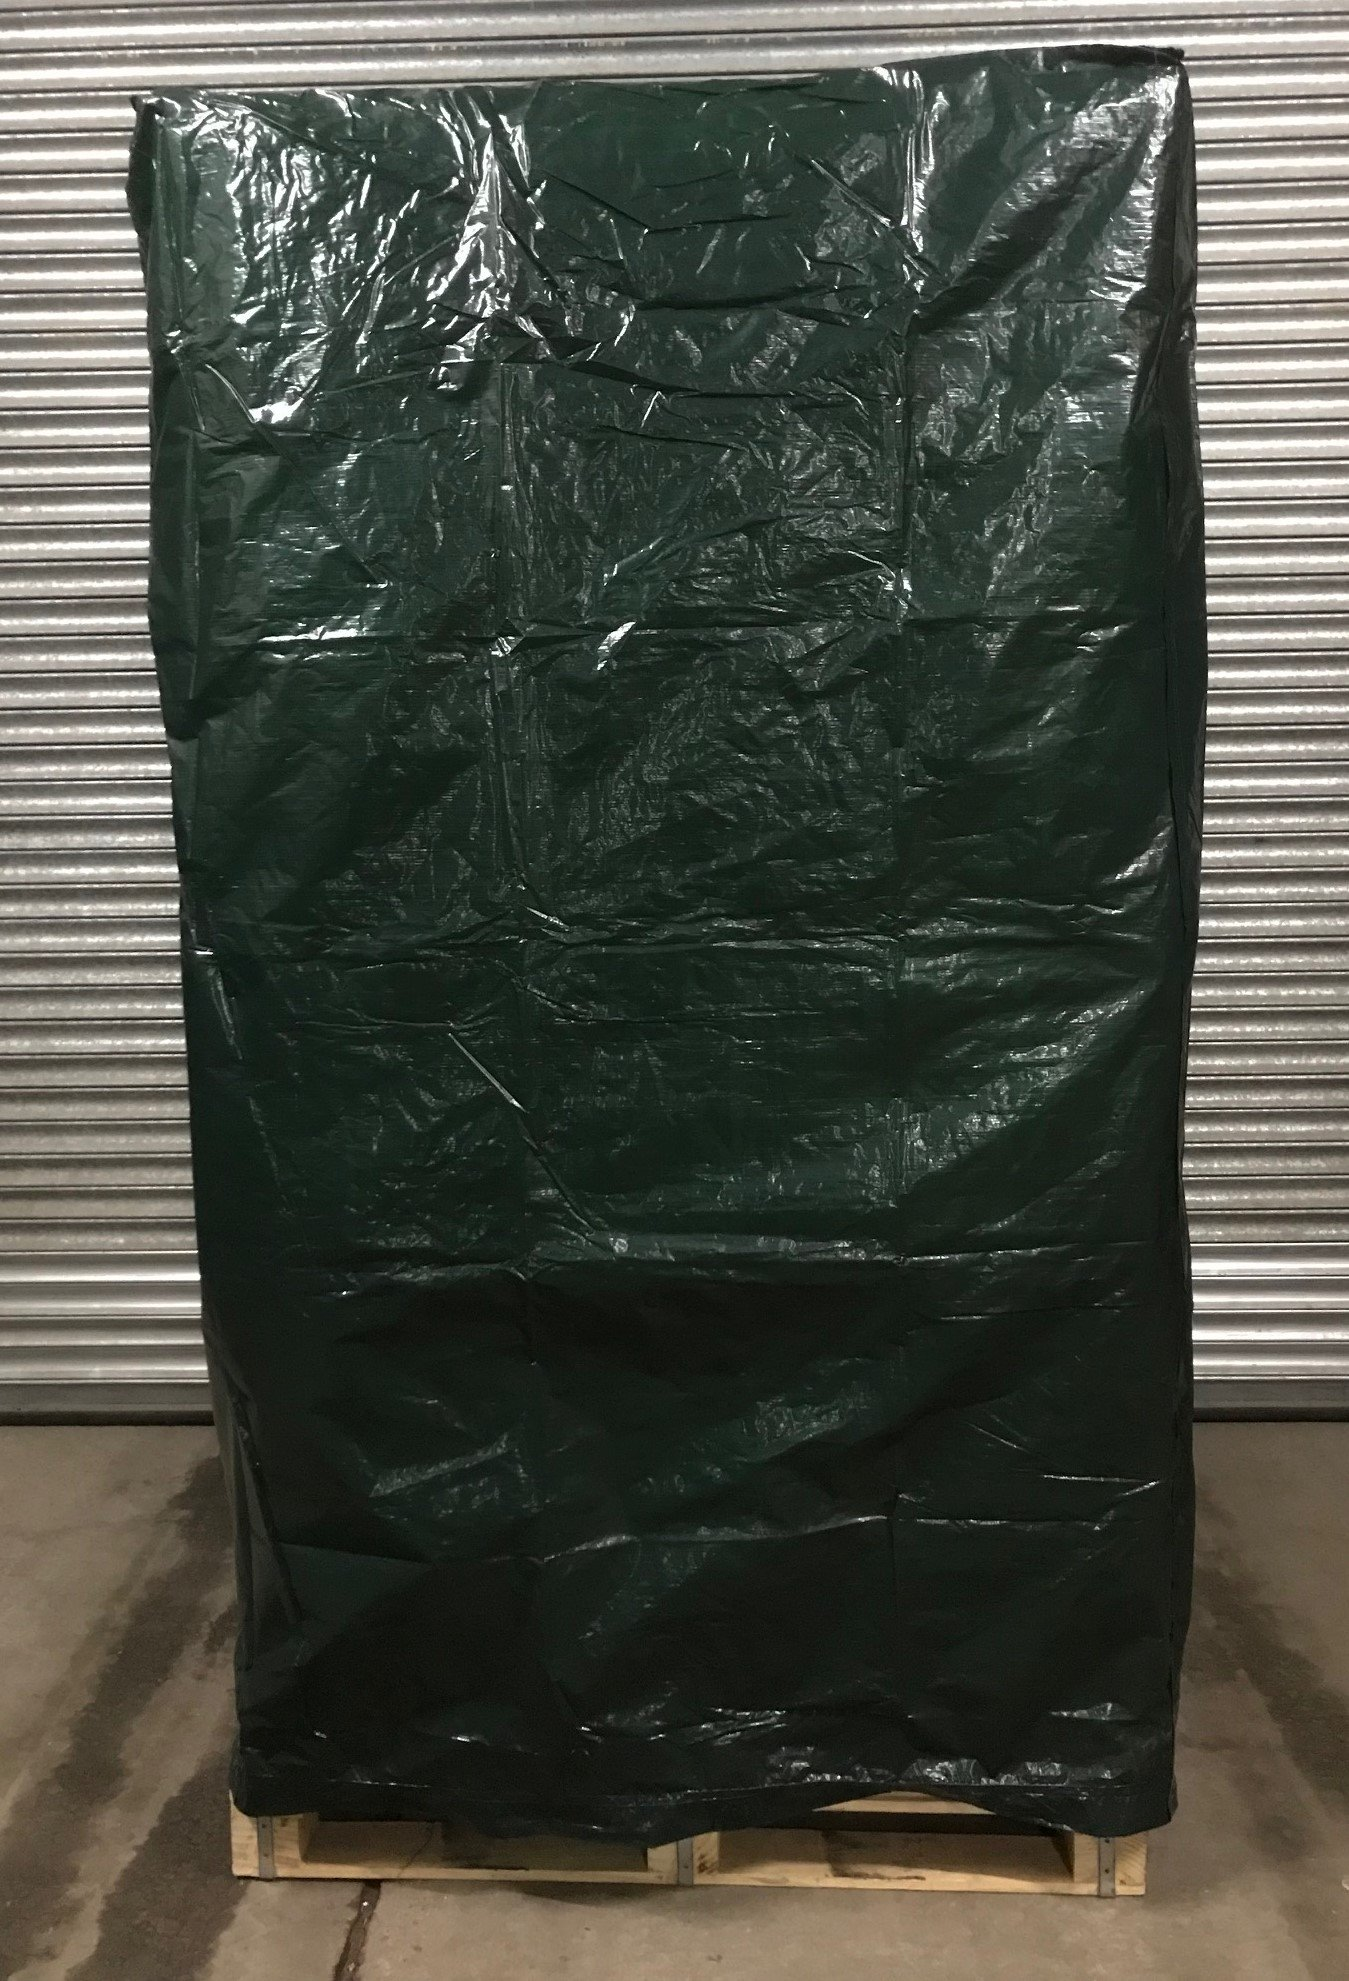 UK pallet covers